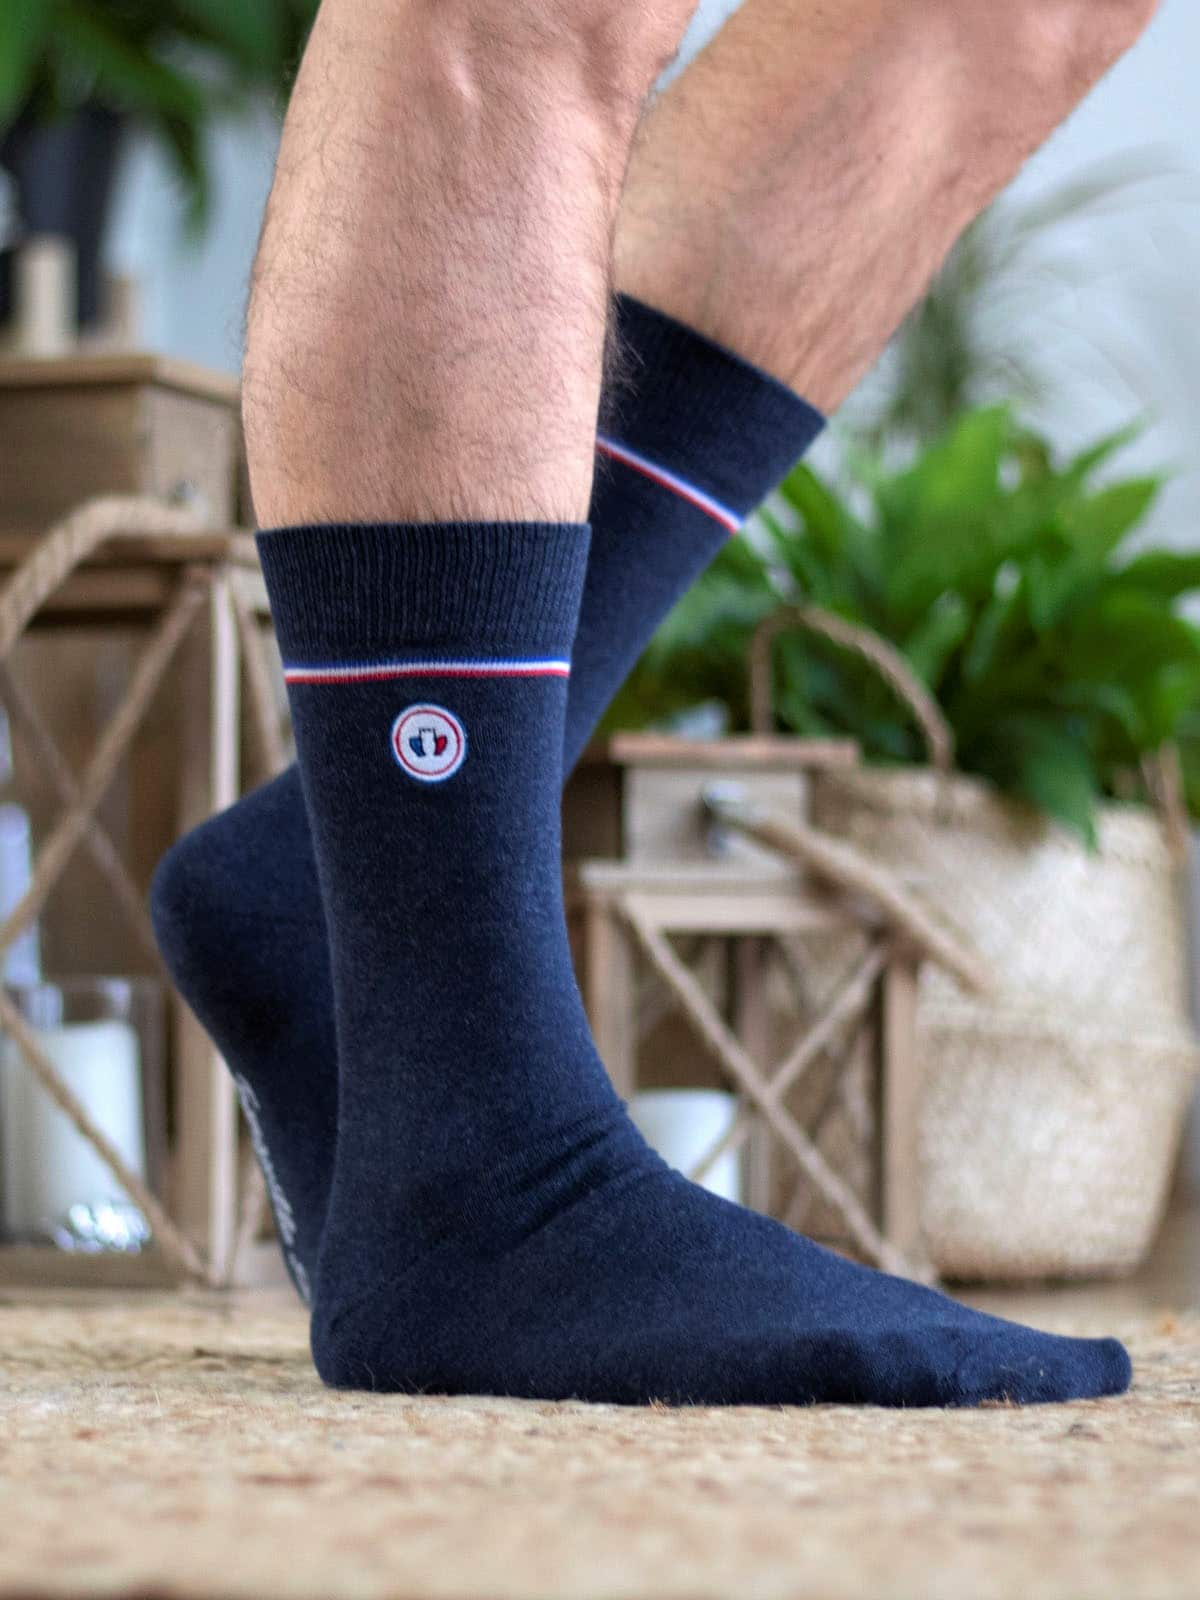 chaussettes-made-in-france-tranquille-emile-les-unies-bleues-chinées